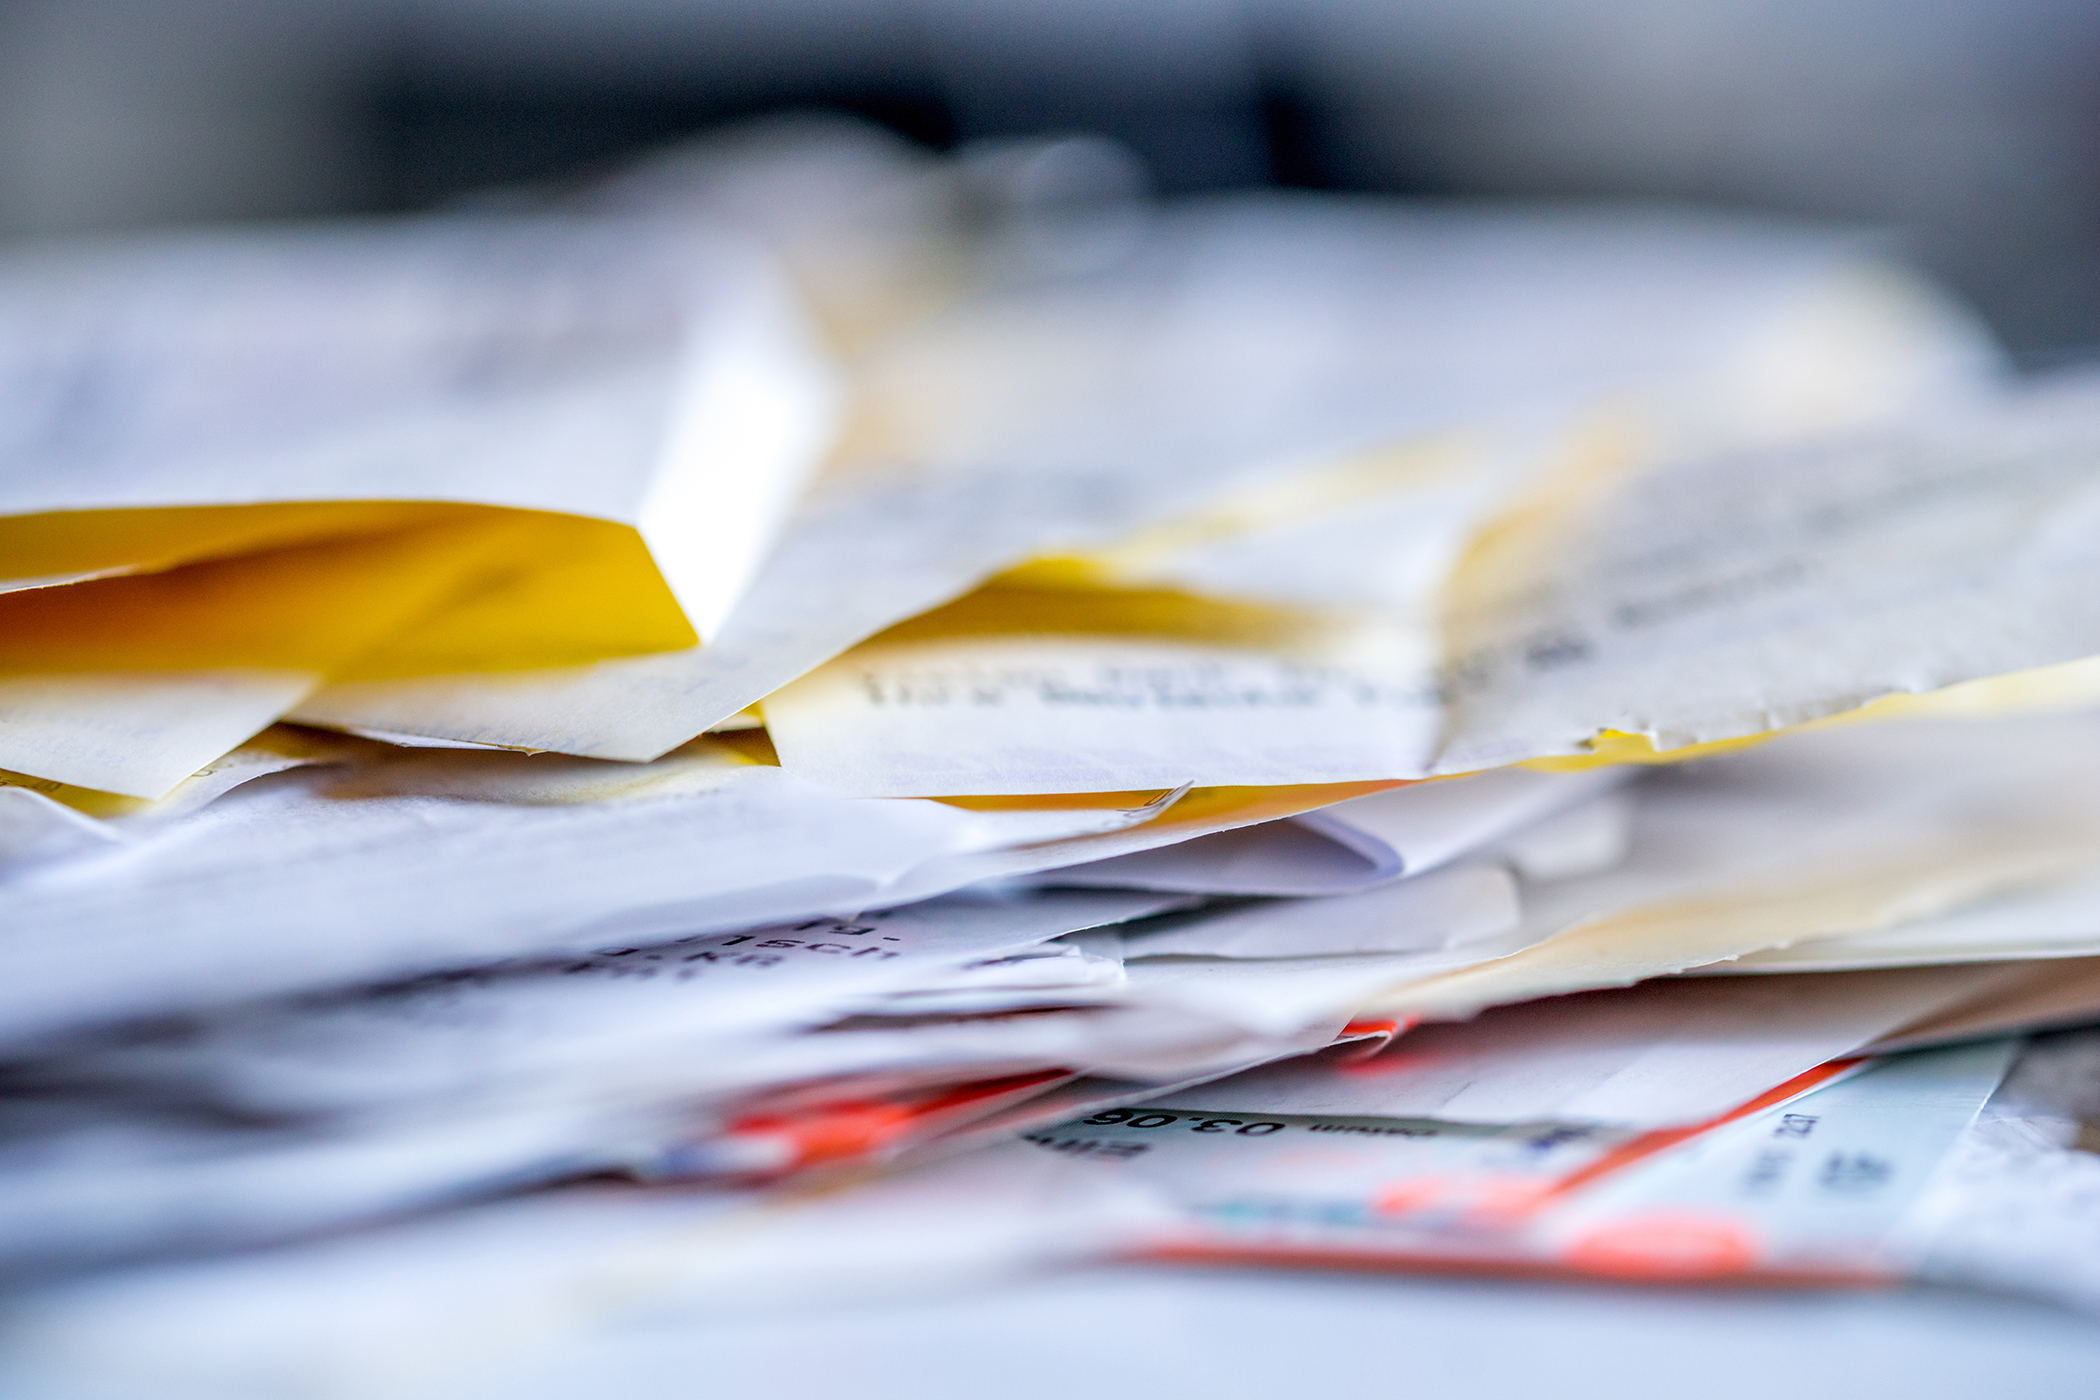 My Bookkeeping Resource in Thousand Oaks showing stack of bills and receipts.